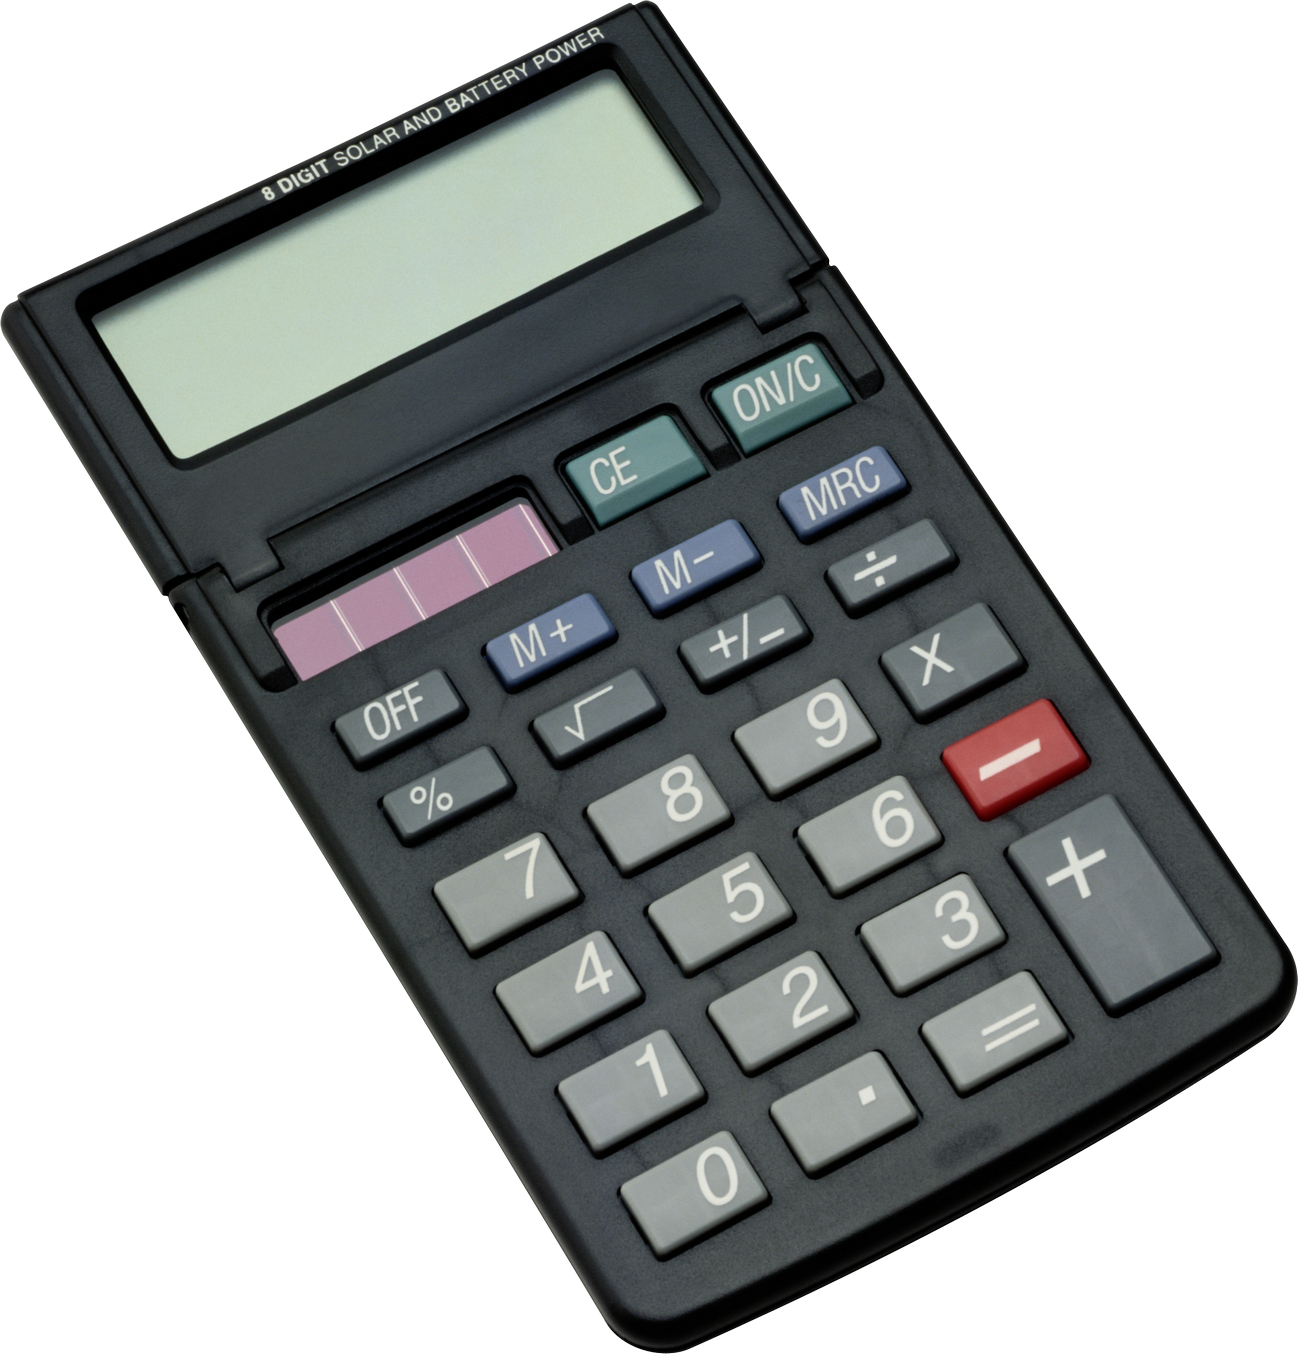 Calculator clipart transparent background. Png image purepng free